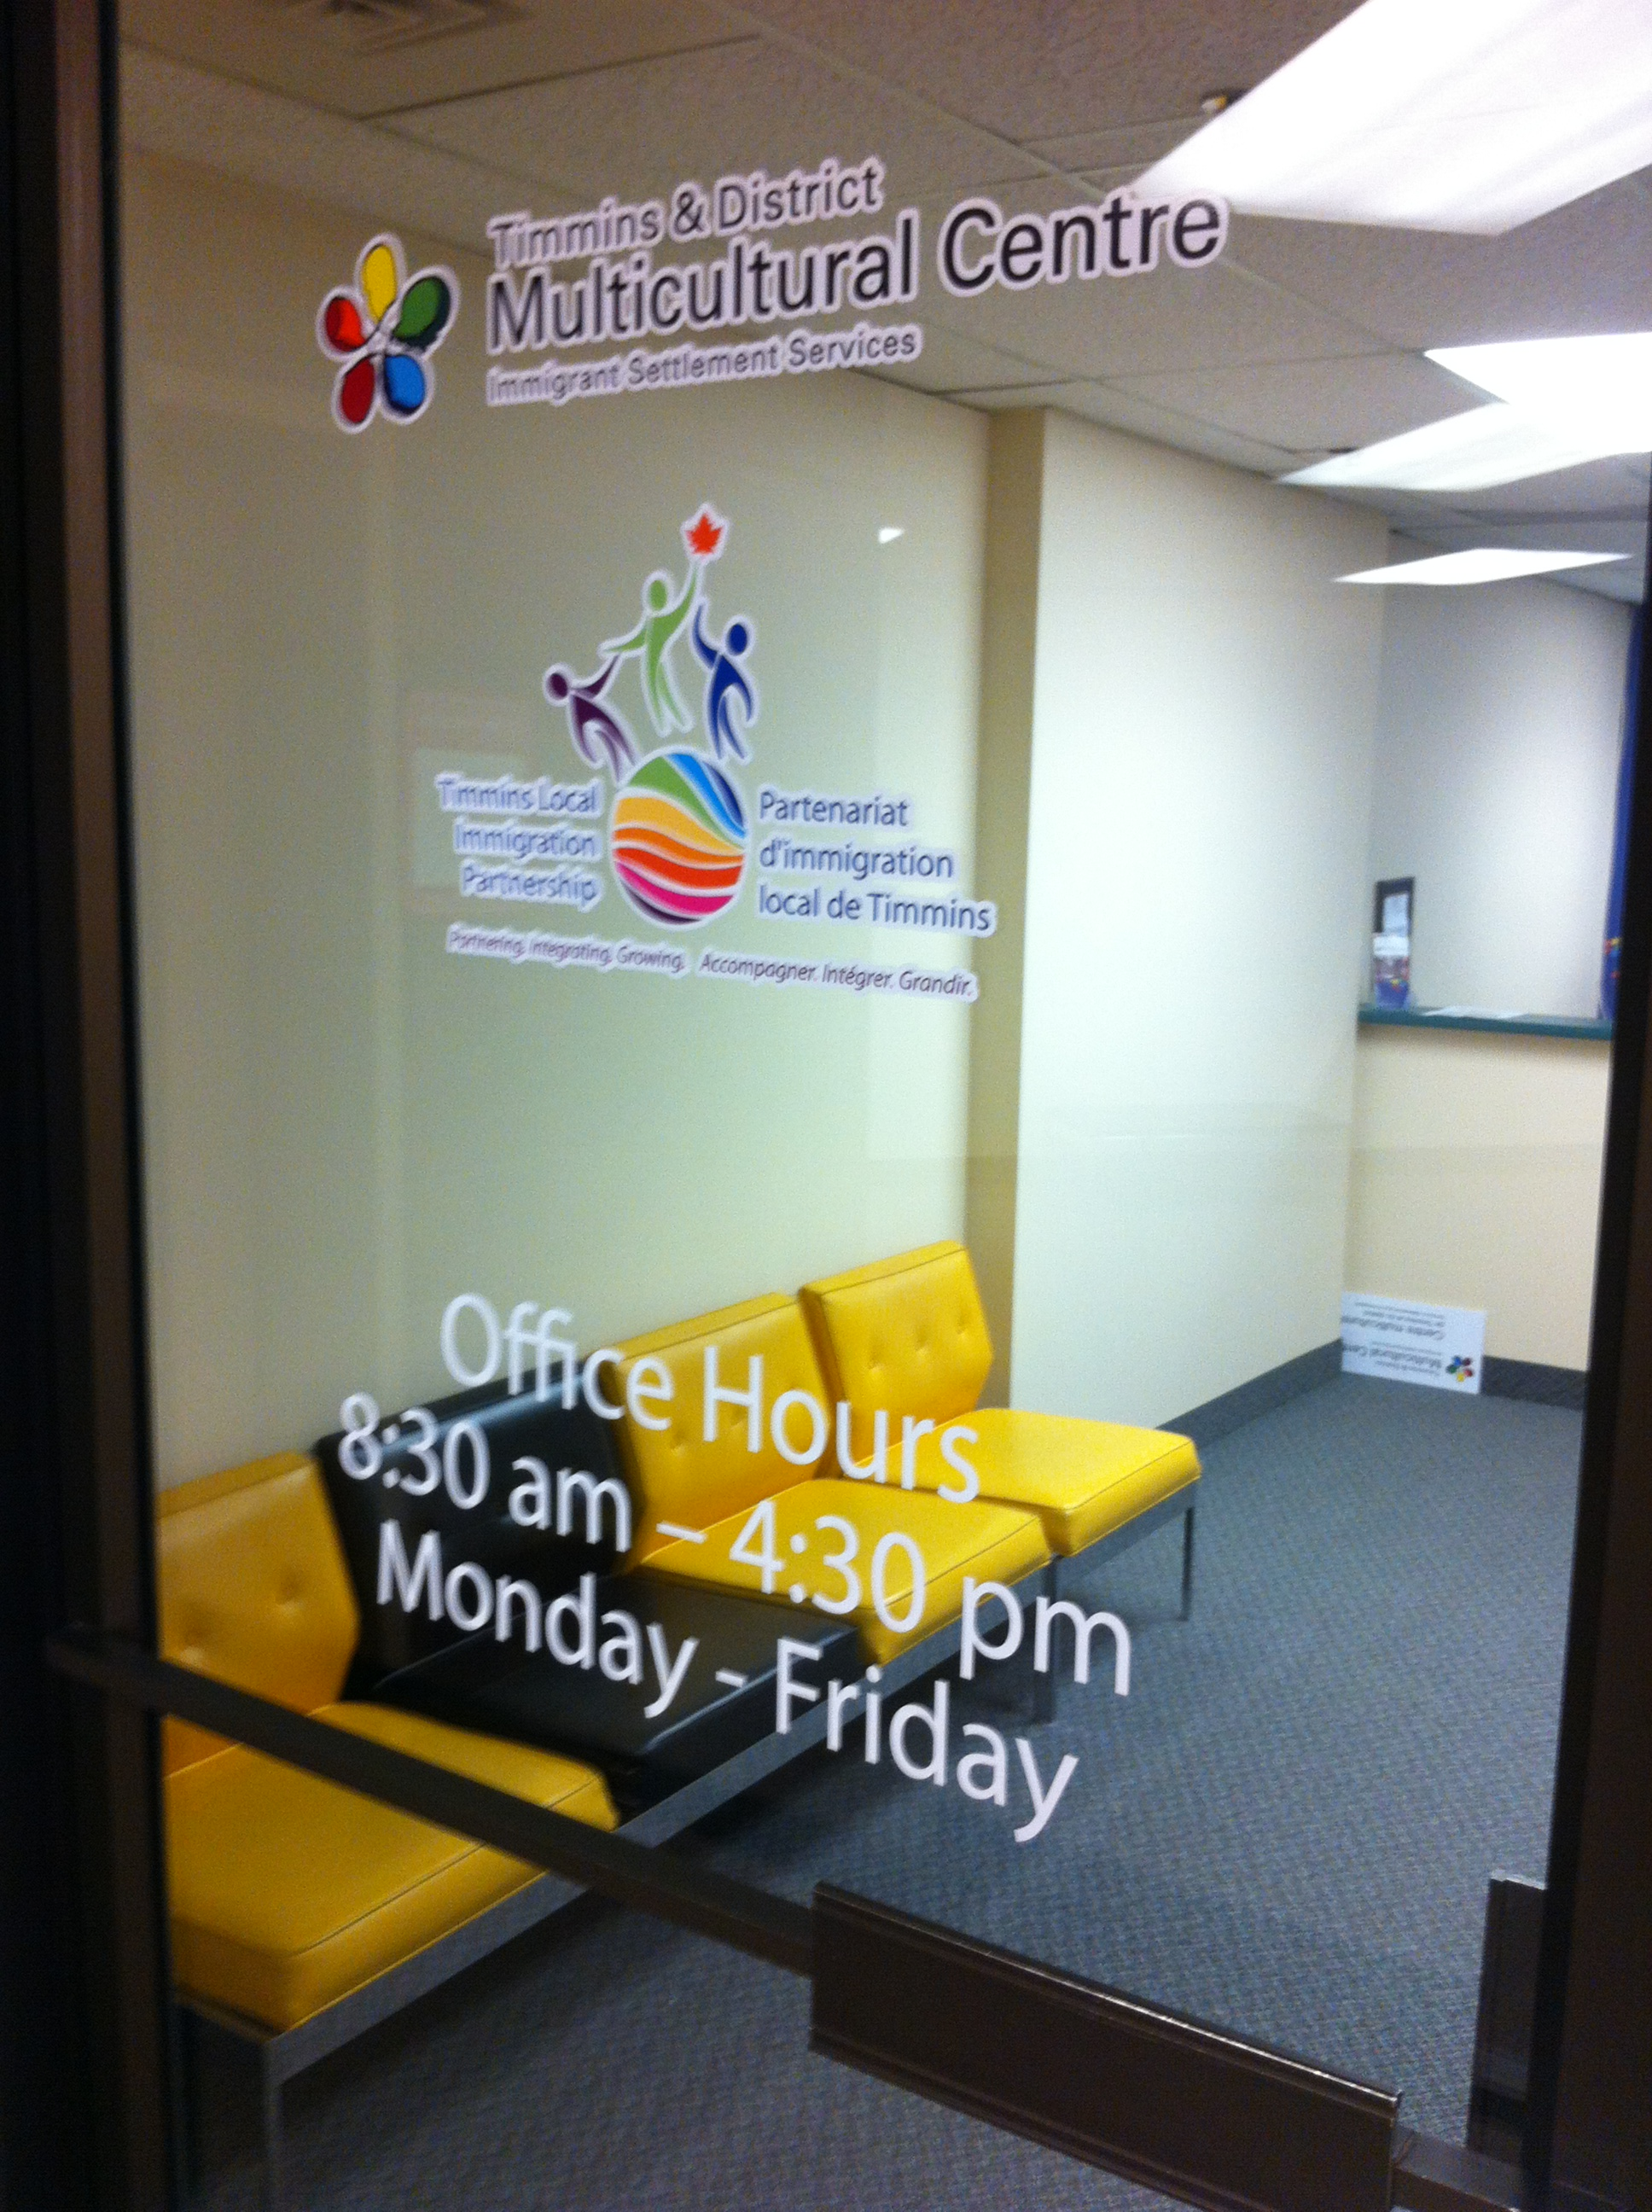 Our satellite office, the Timmins & District Multicultural Centre, at 119 Pine St. South, Timmins ON